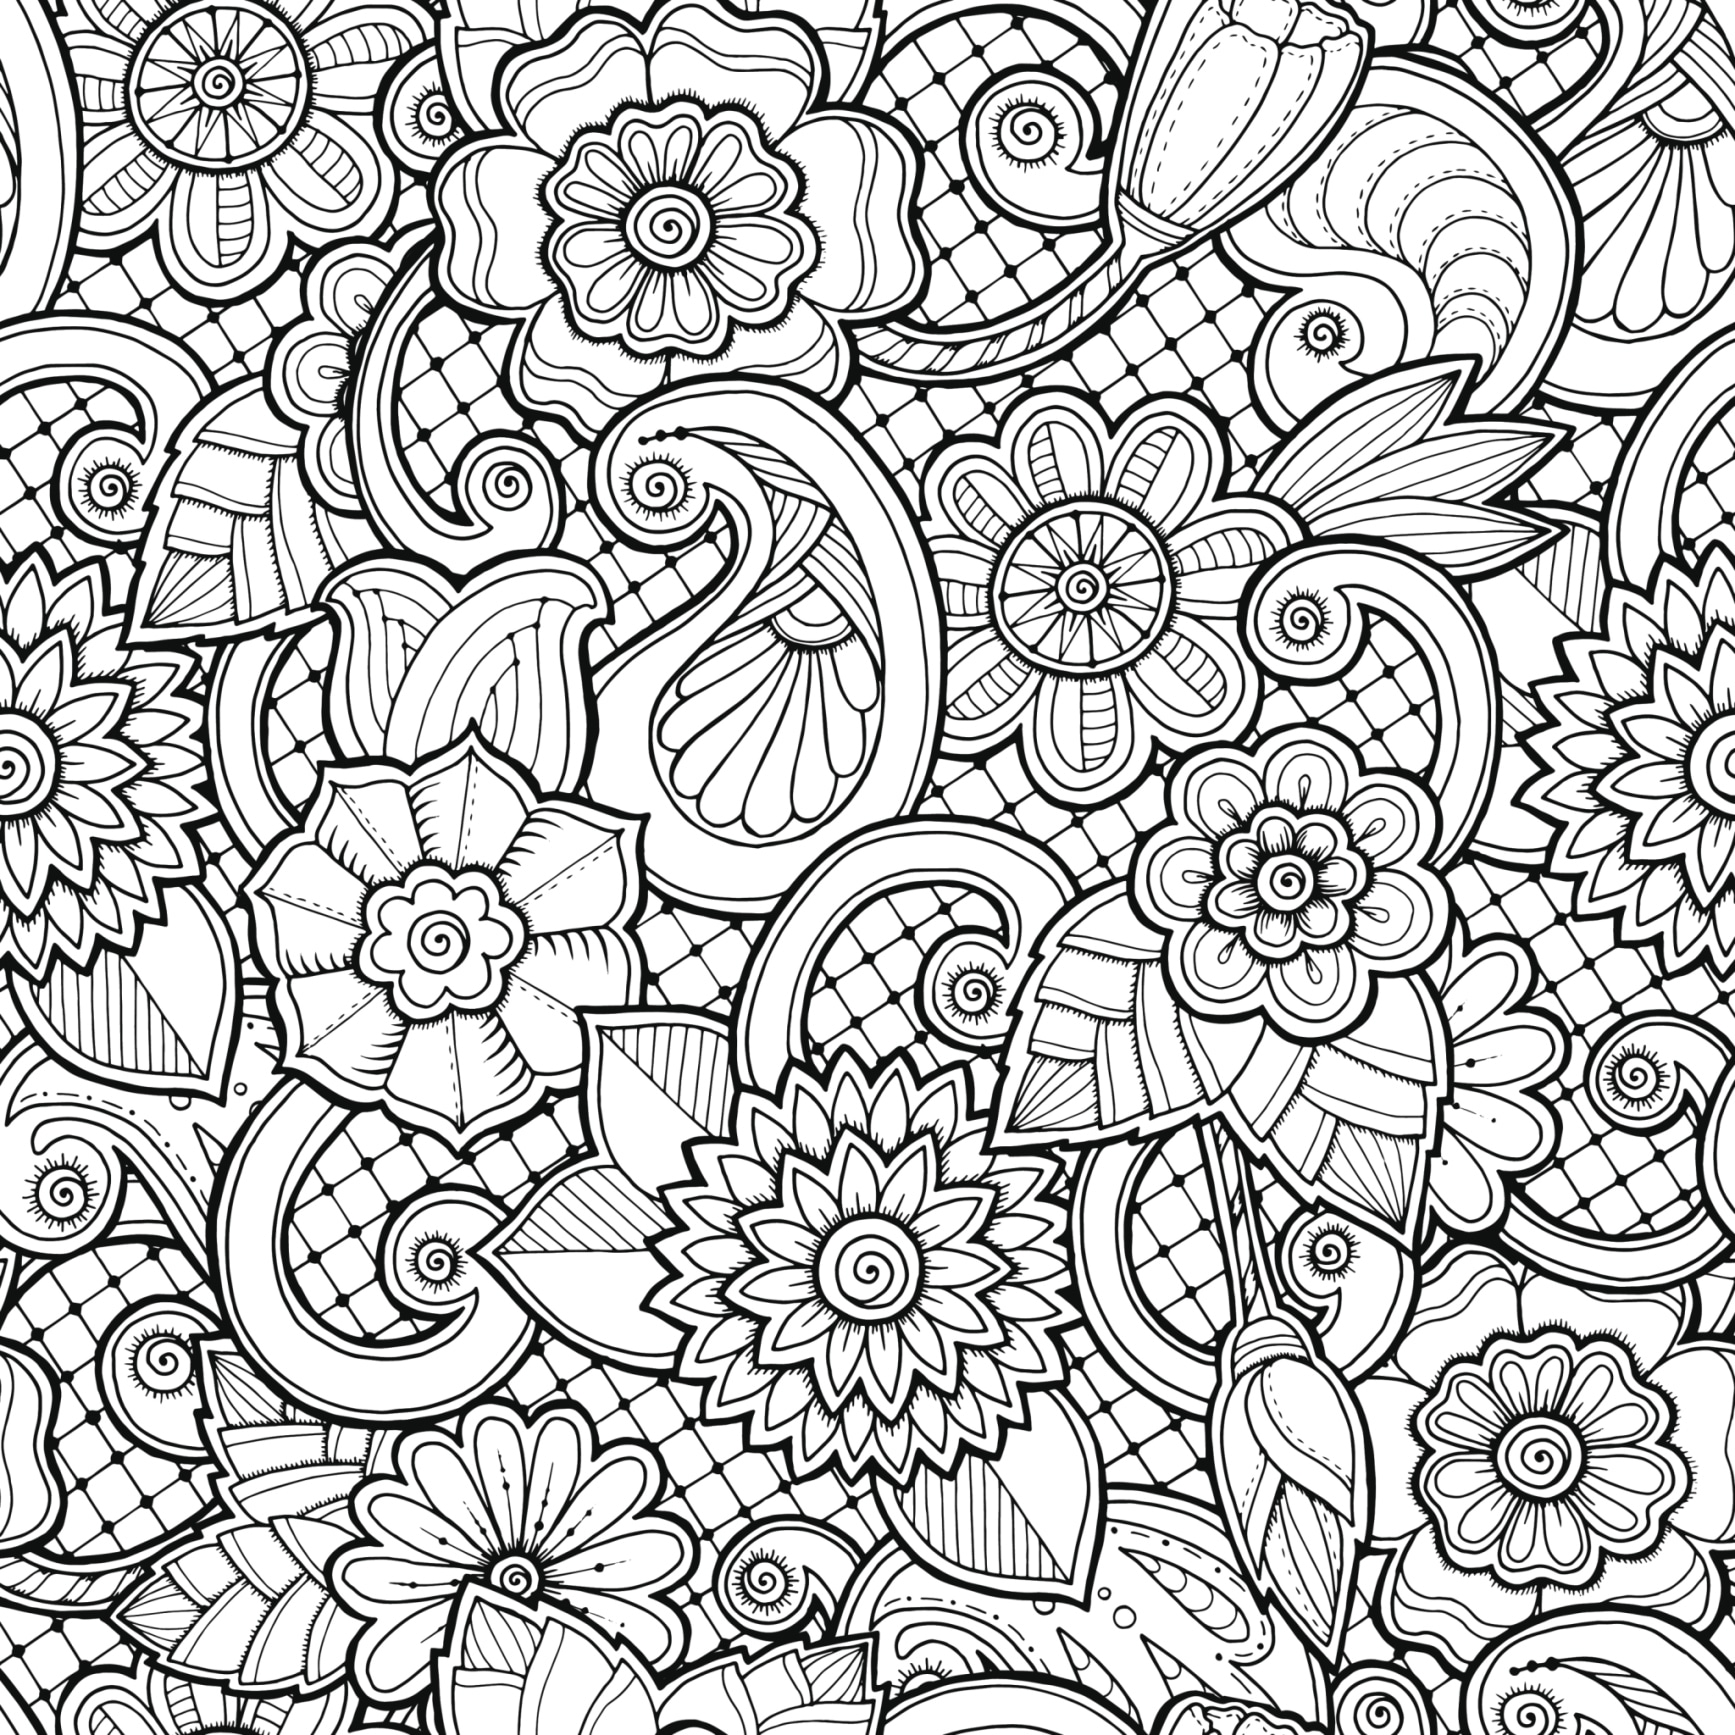 Colouring Pages one page_Page_10 - CK Public Health